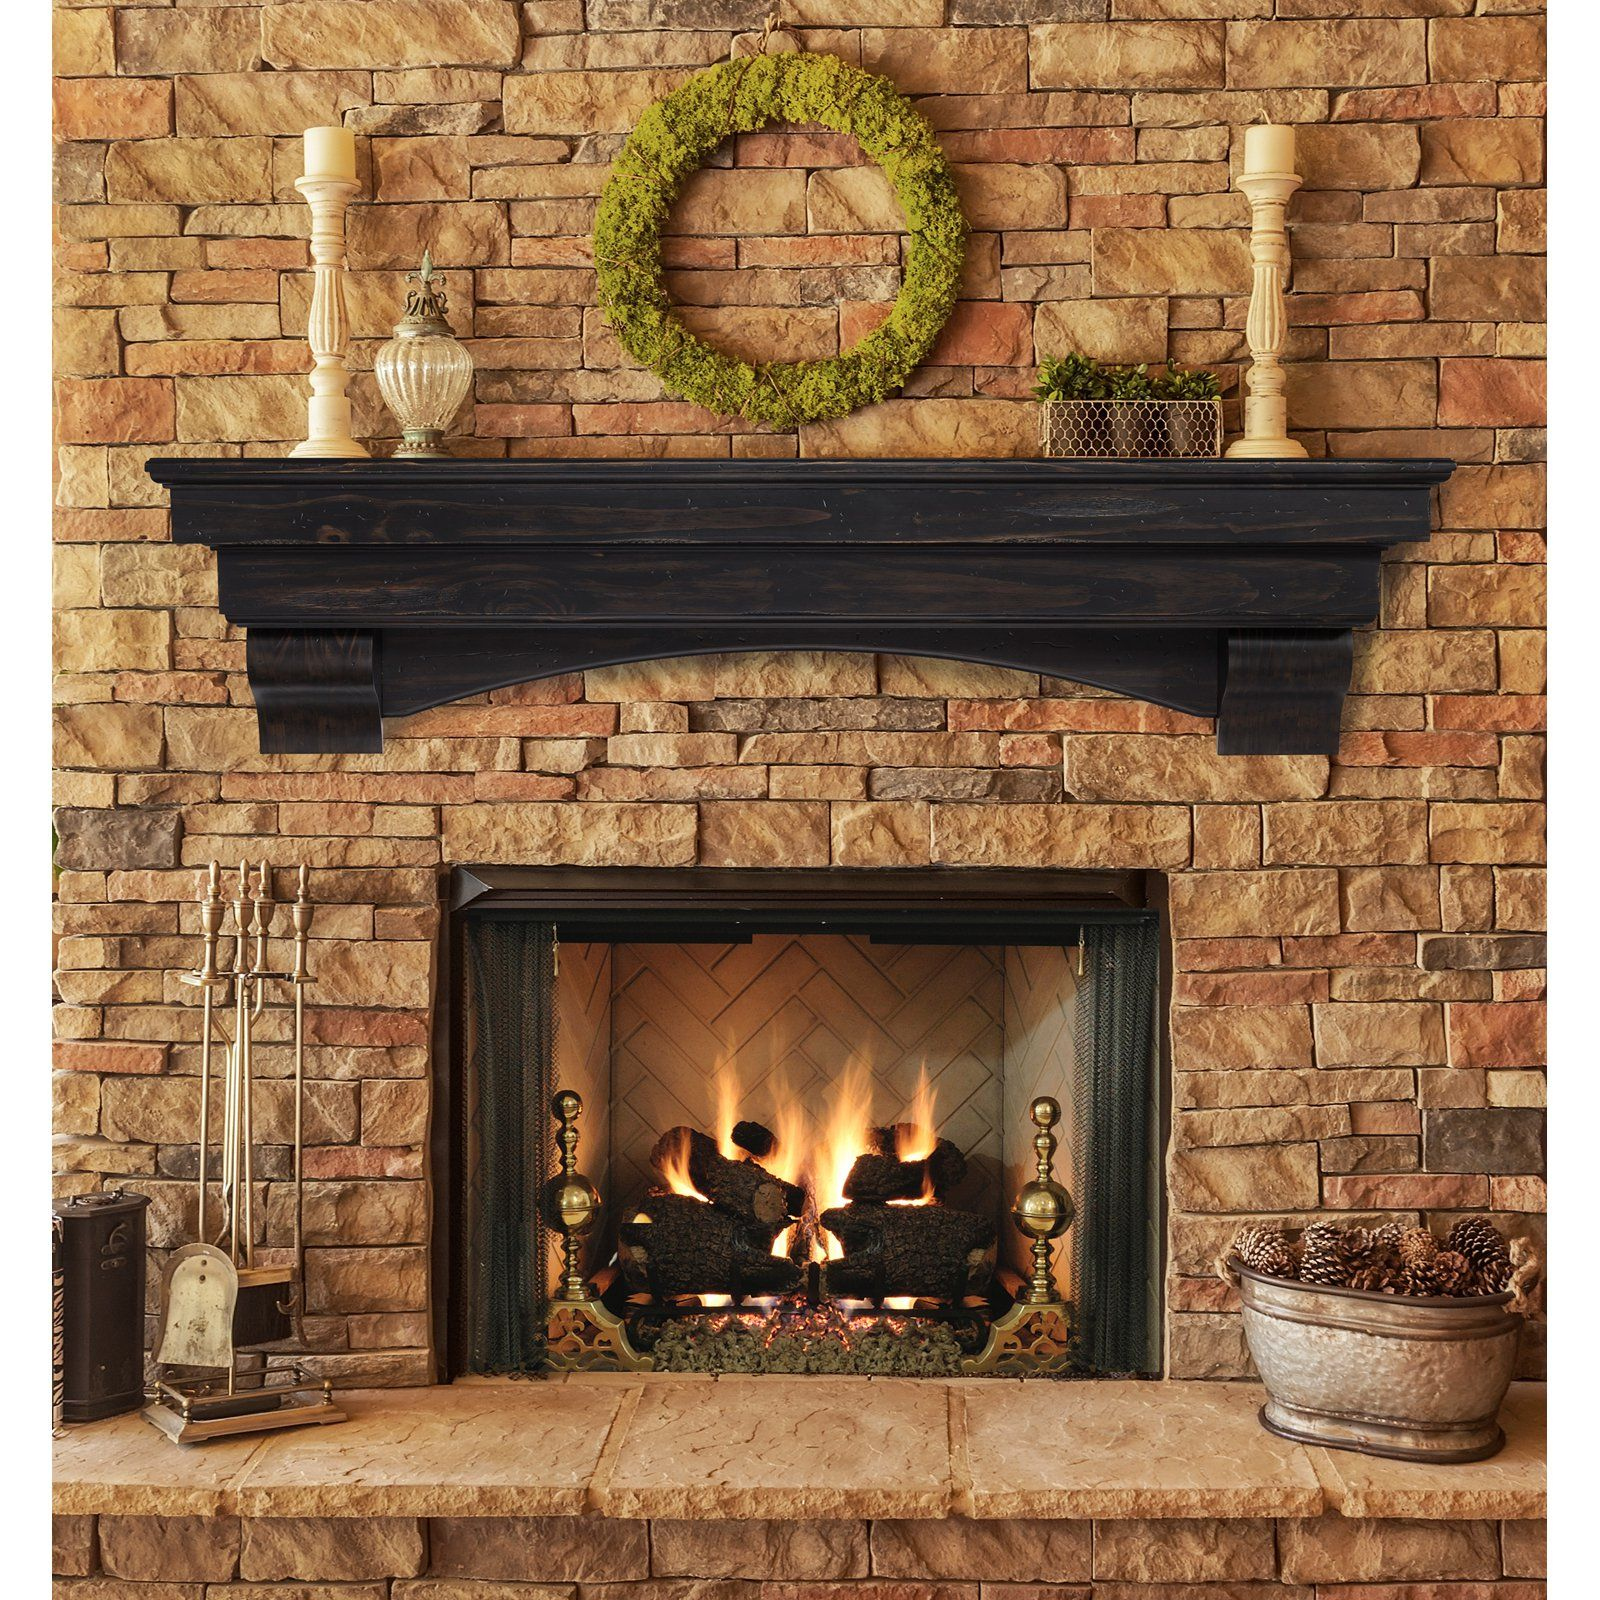 Pearl mantels celeste fireplace mantel shelf the pearl for Fire place mantel ideas